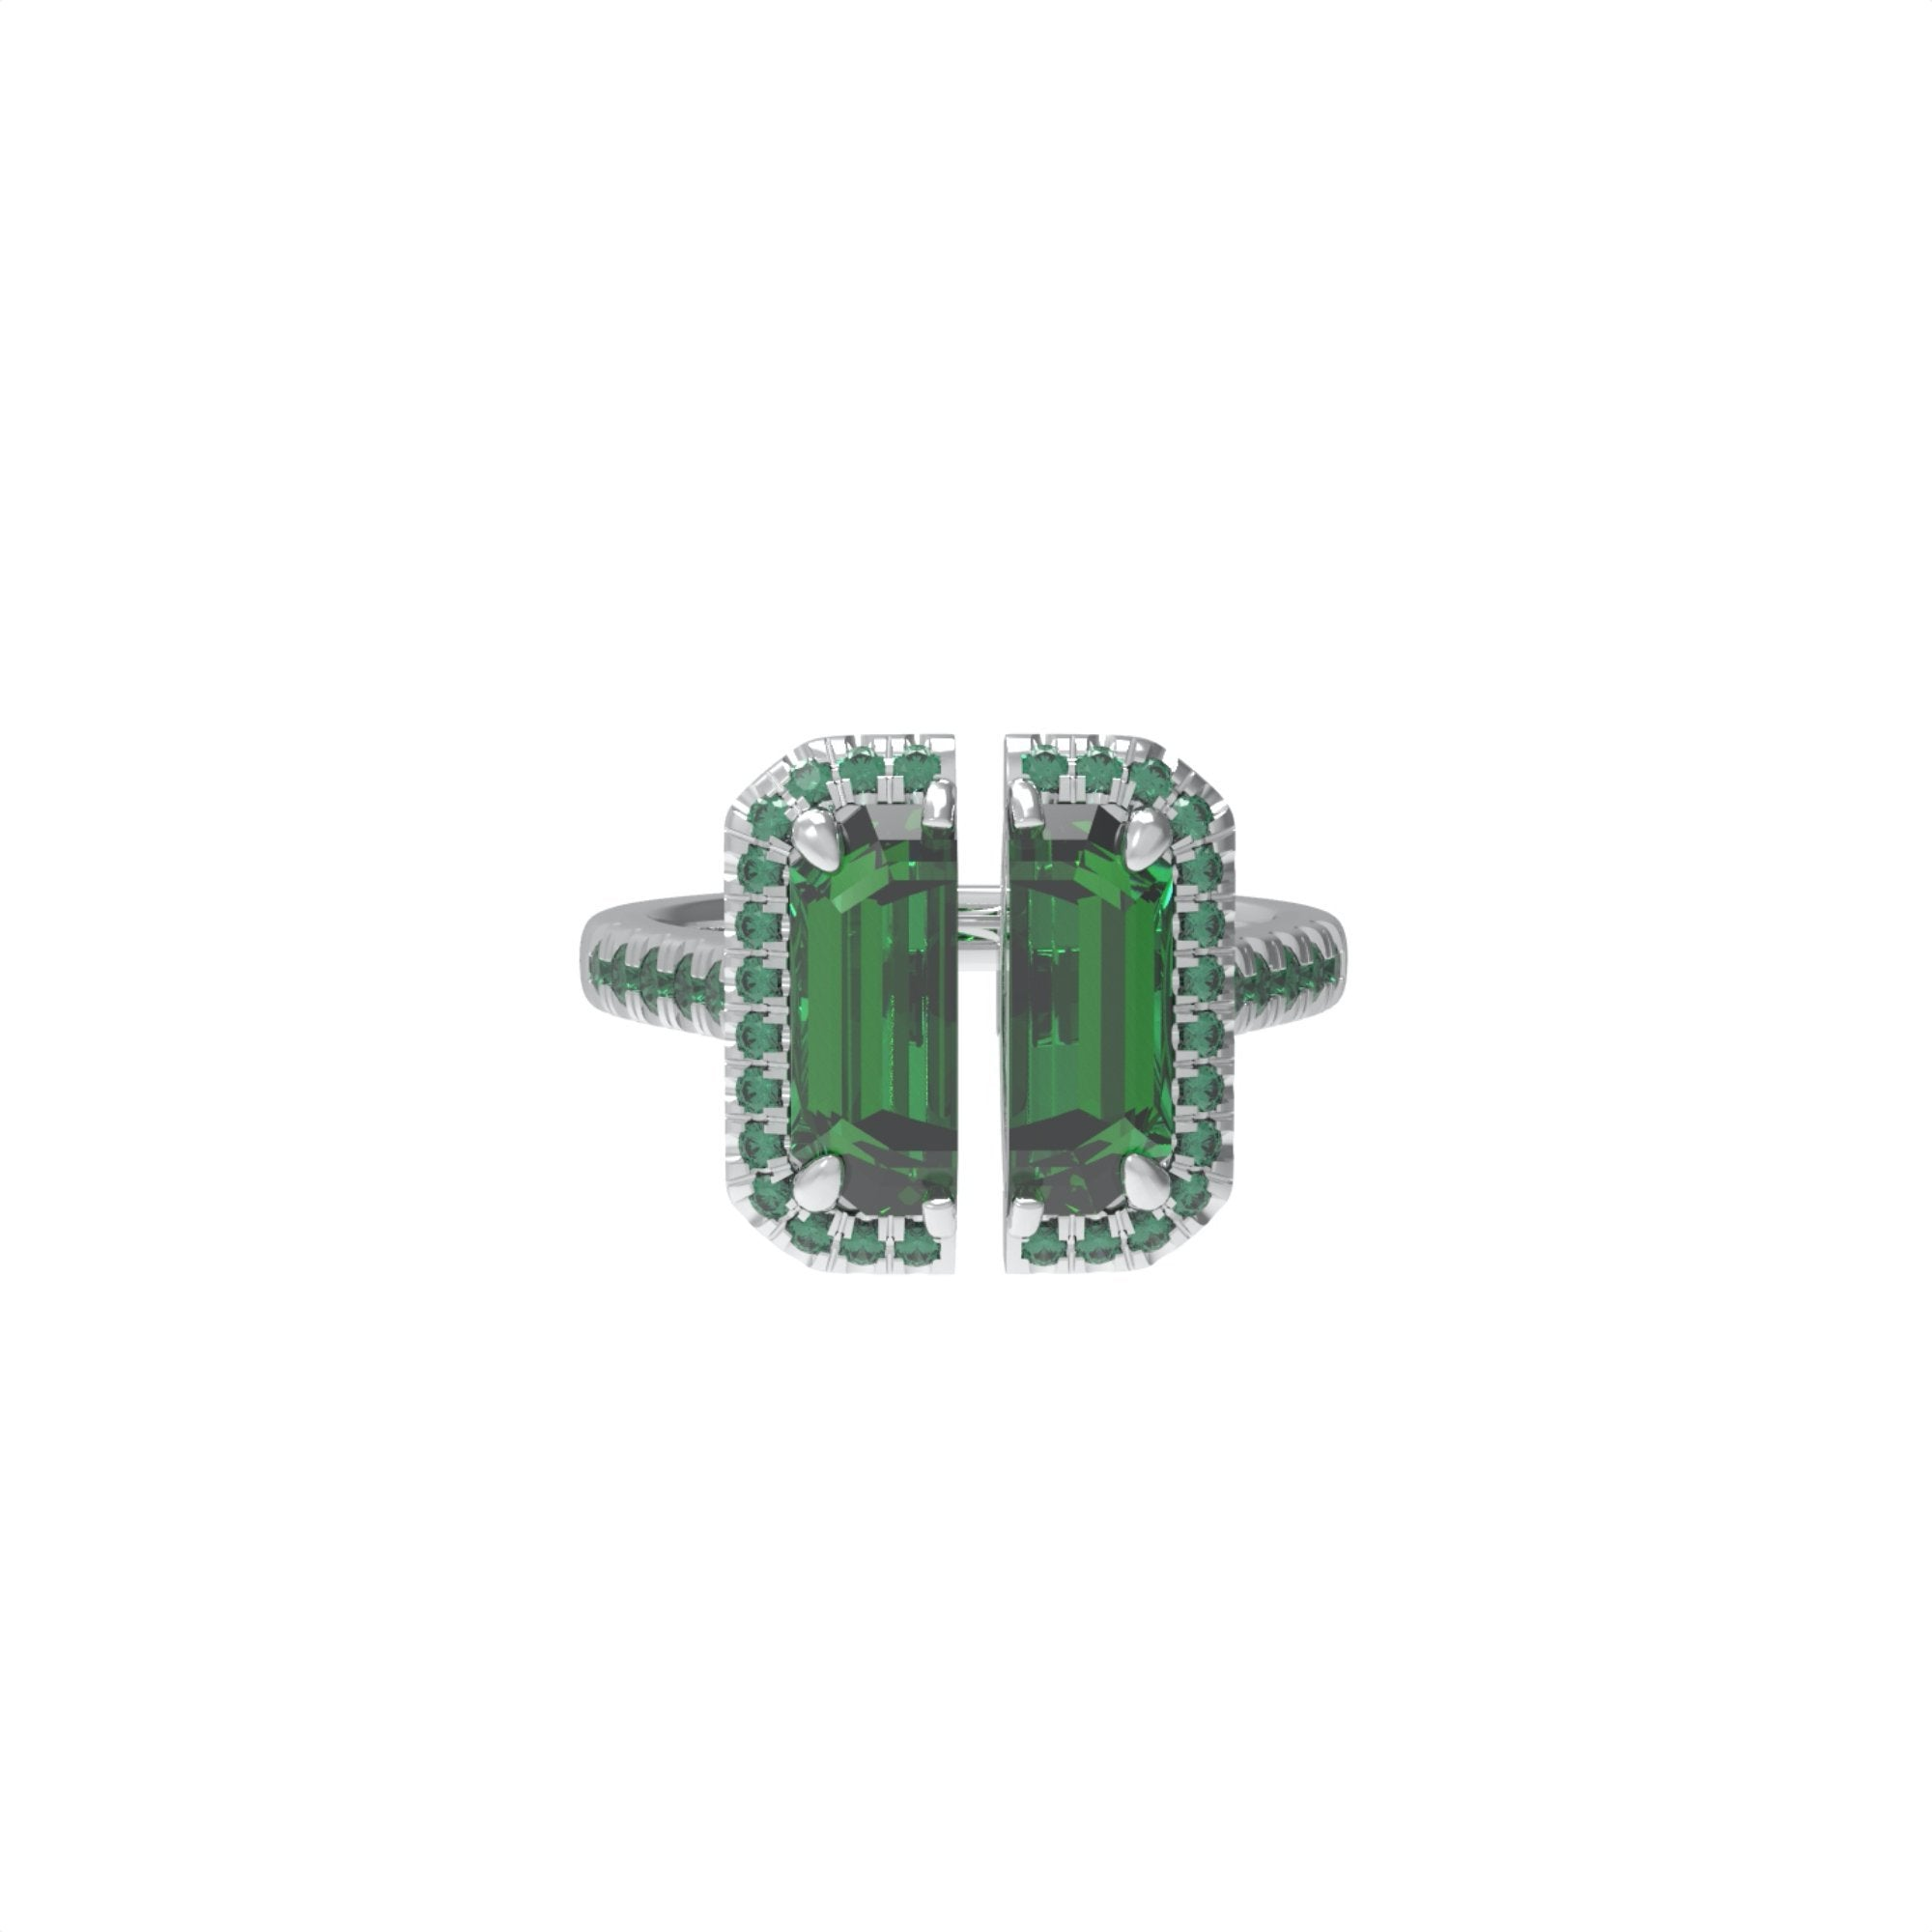 51 E JOHN Deconstruction Green Cropped Gem Ring | MADA IN CHINA